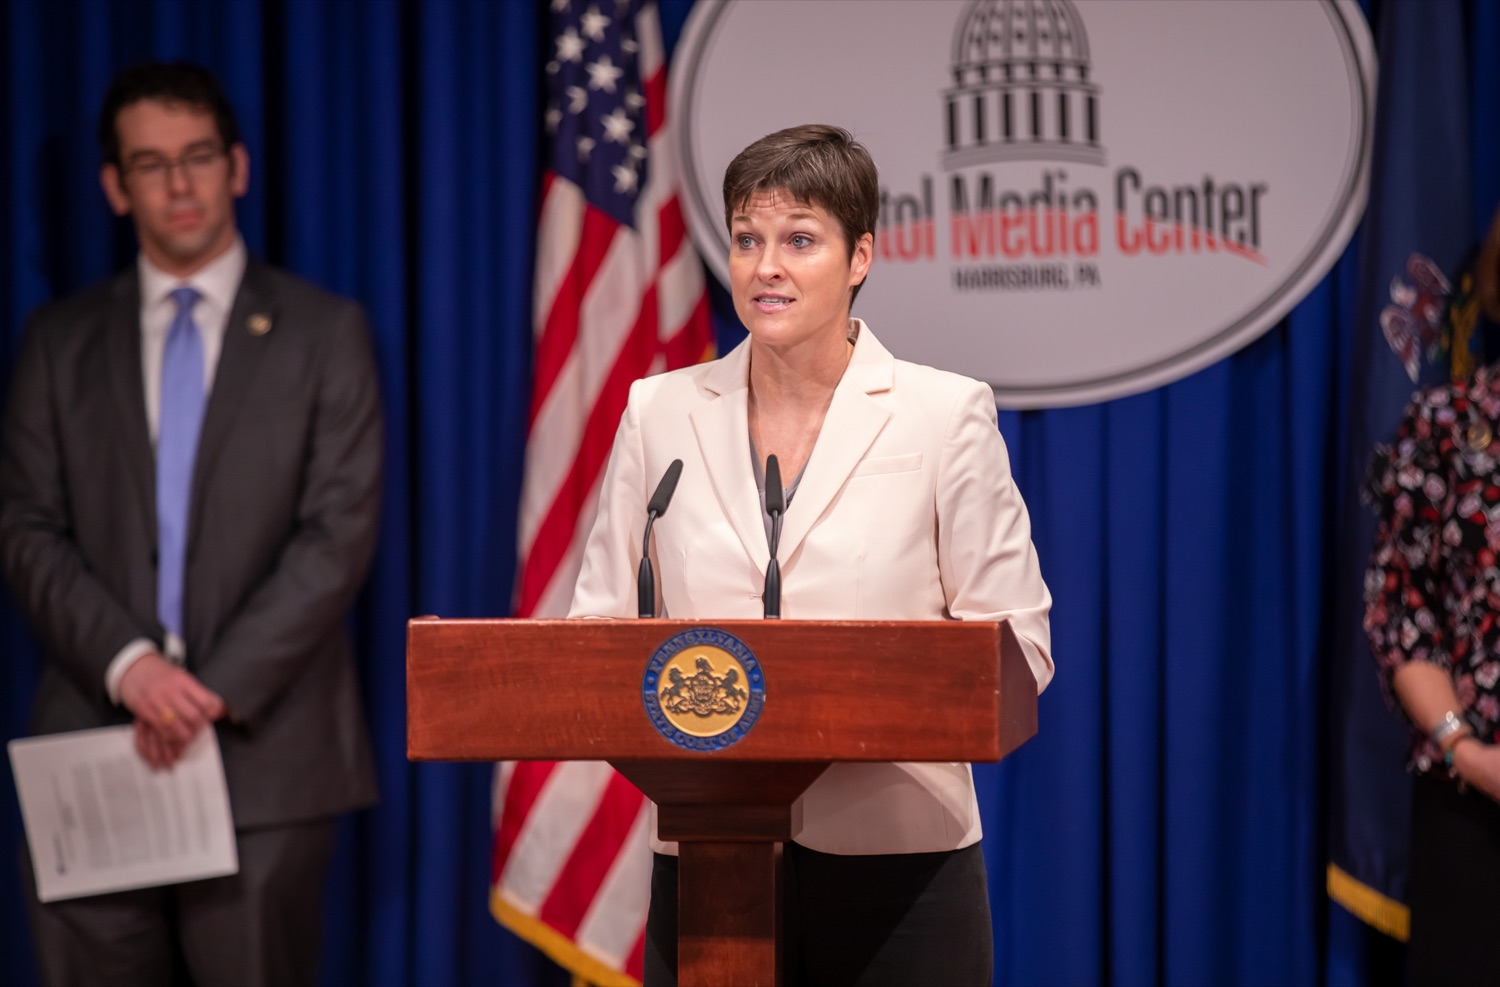 """<a href=""""http://filesource.abacast.com/commonwealthofpa/photo/17711_DHS_SuicidePrevention_AG_02.jpg"""" target=""""_blank"""">⇣Download Photo<br></a>Harrisburg, PA.  Secretary of the Department of Human Services, Teresa Miller discusses the initial report of Pennsylvanias Suicide Prevention Task Force based on the statewide listening sessions held throughout fall 2019. The work of the Suicide Prevention Task Force is a complement to the goals and strategies surrounding the governors Reach Out PA: Your Mental Health Matters initiative announced earlier this month and his Executive Order to protect vulnerable populations signed last year.  January 14, 2020."""